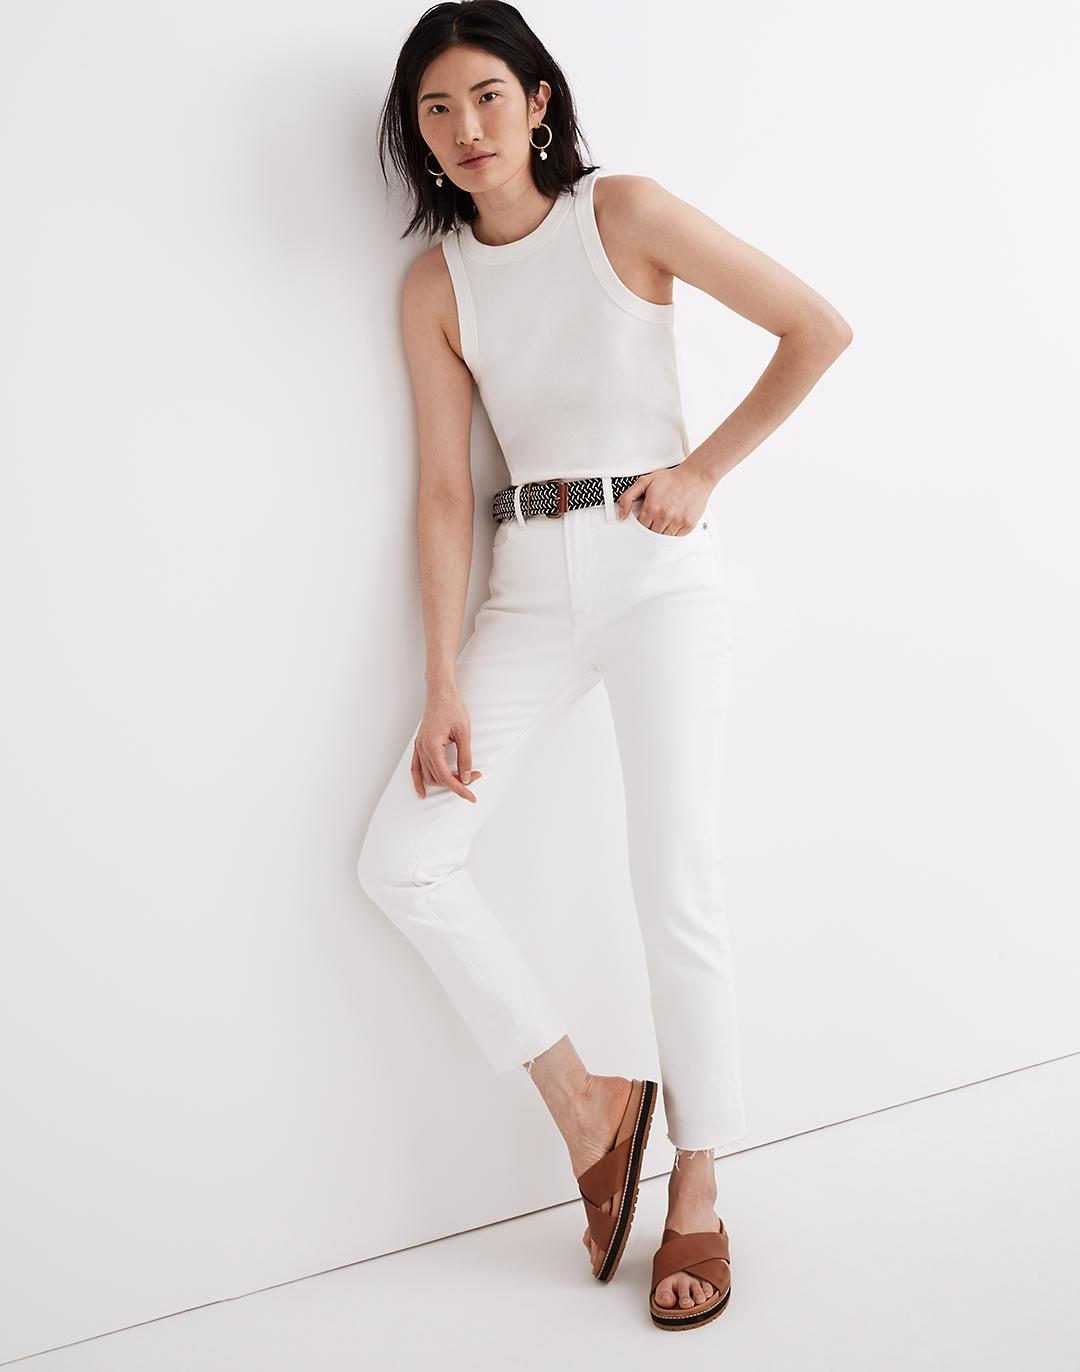 The Petite Perfect Vintage Jean in Tile White